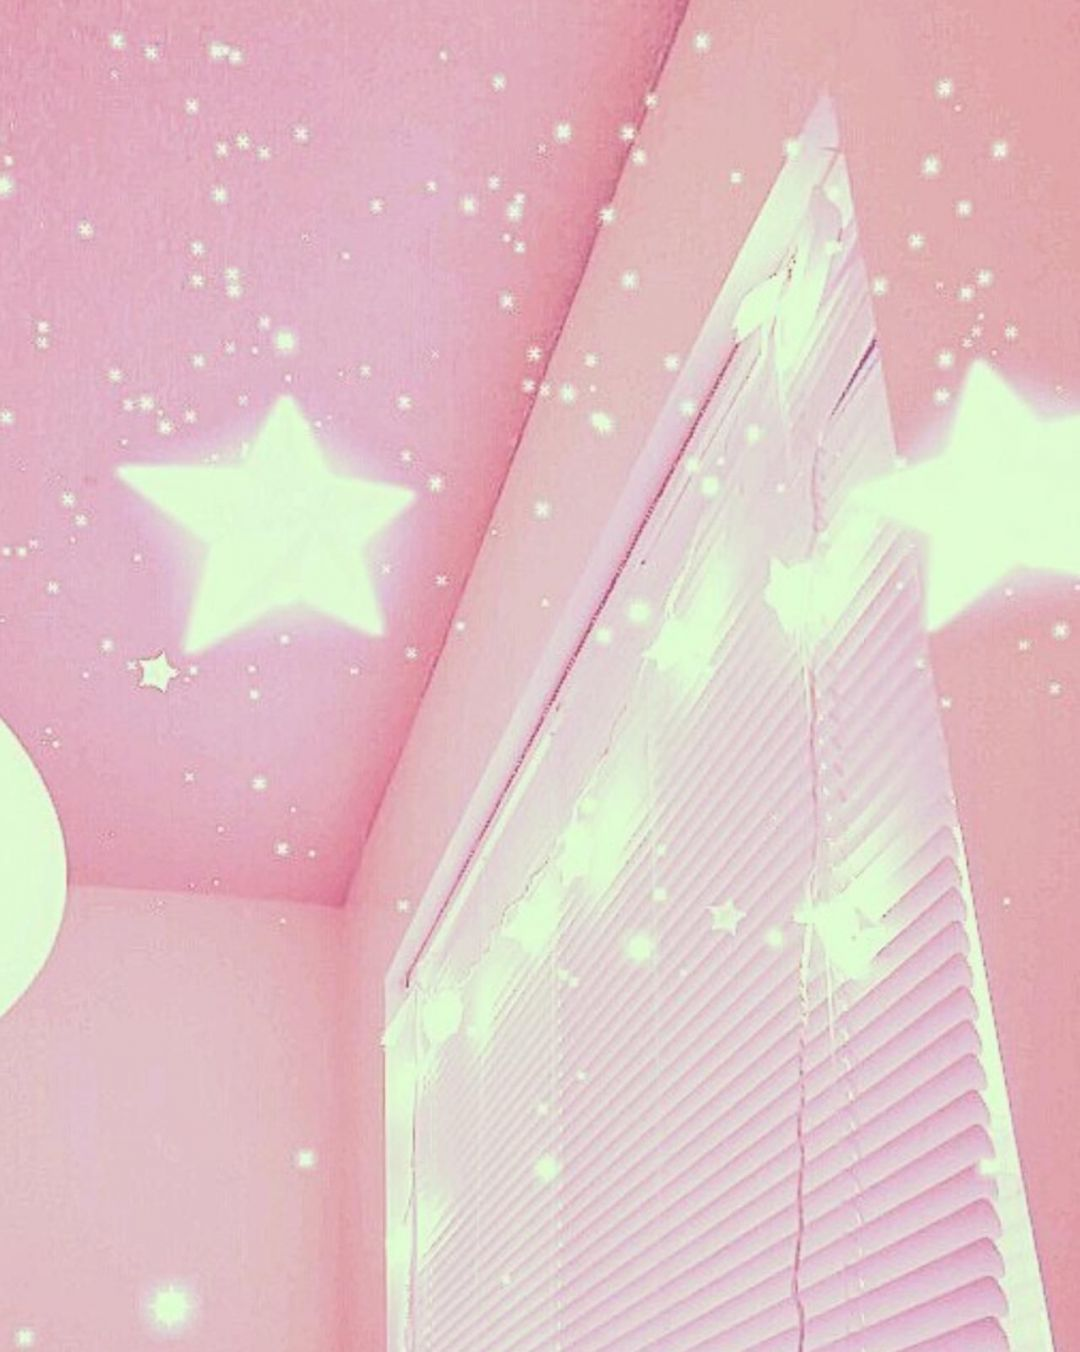 pink aesthetic tumblr laptopandroid iphone desktop hd backgrounds wallpapers 1080p 4k shcbn